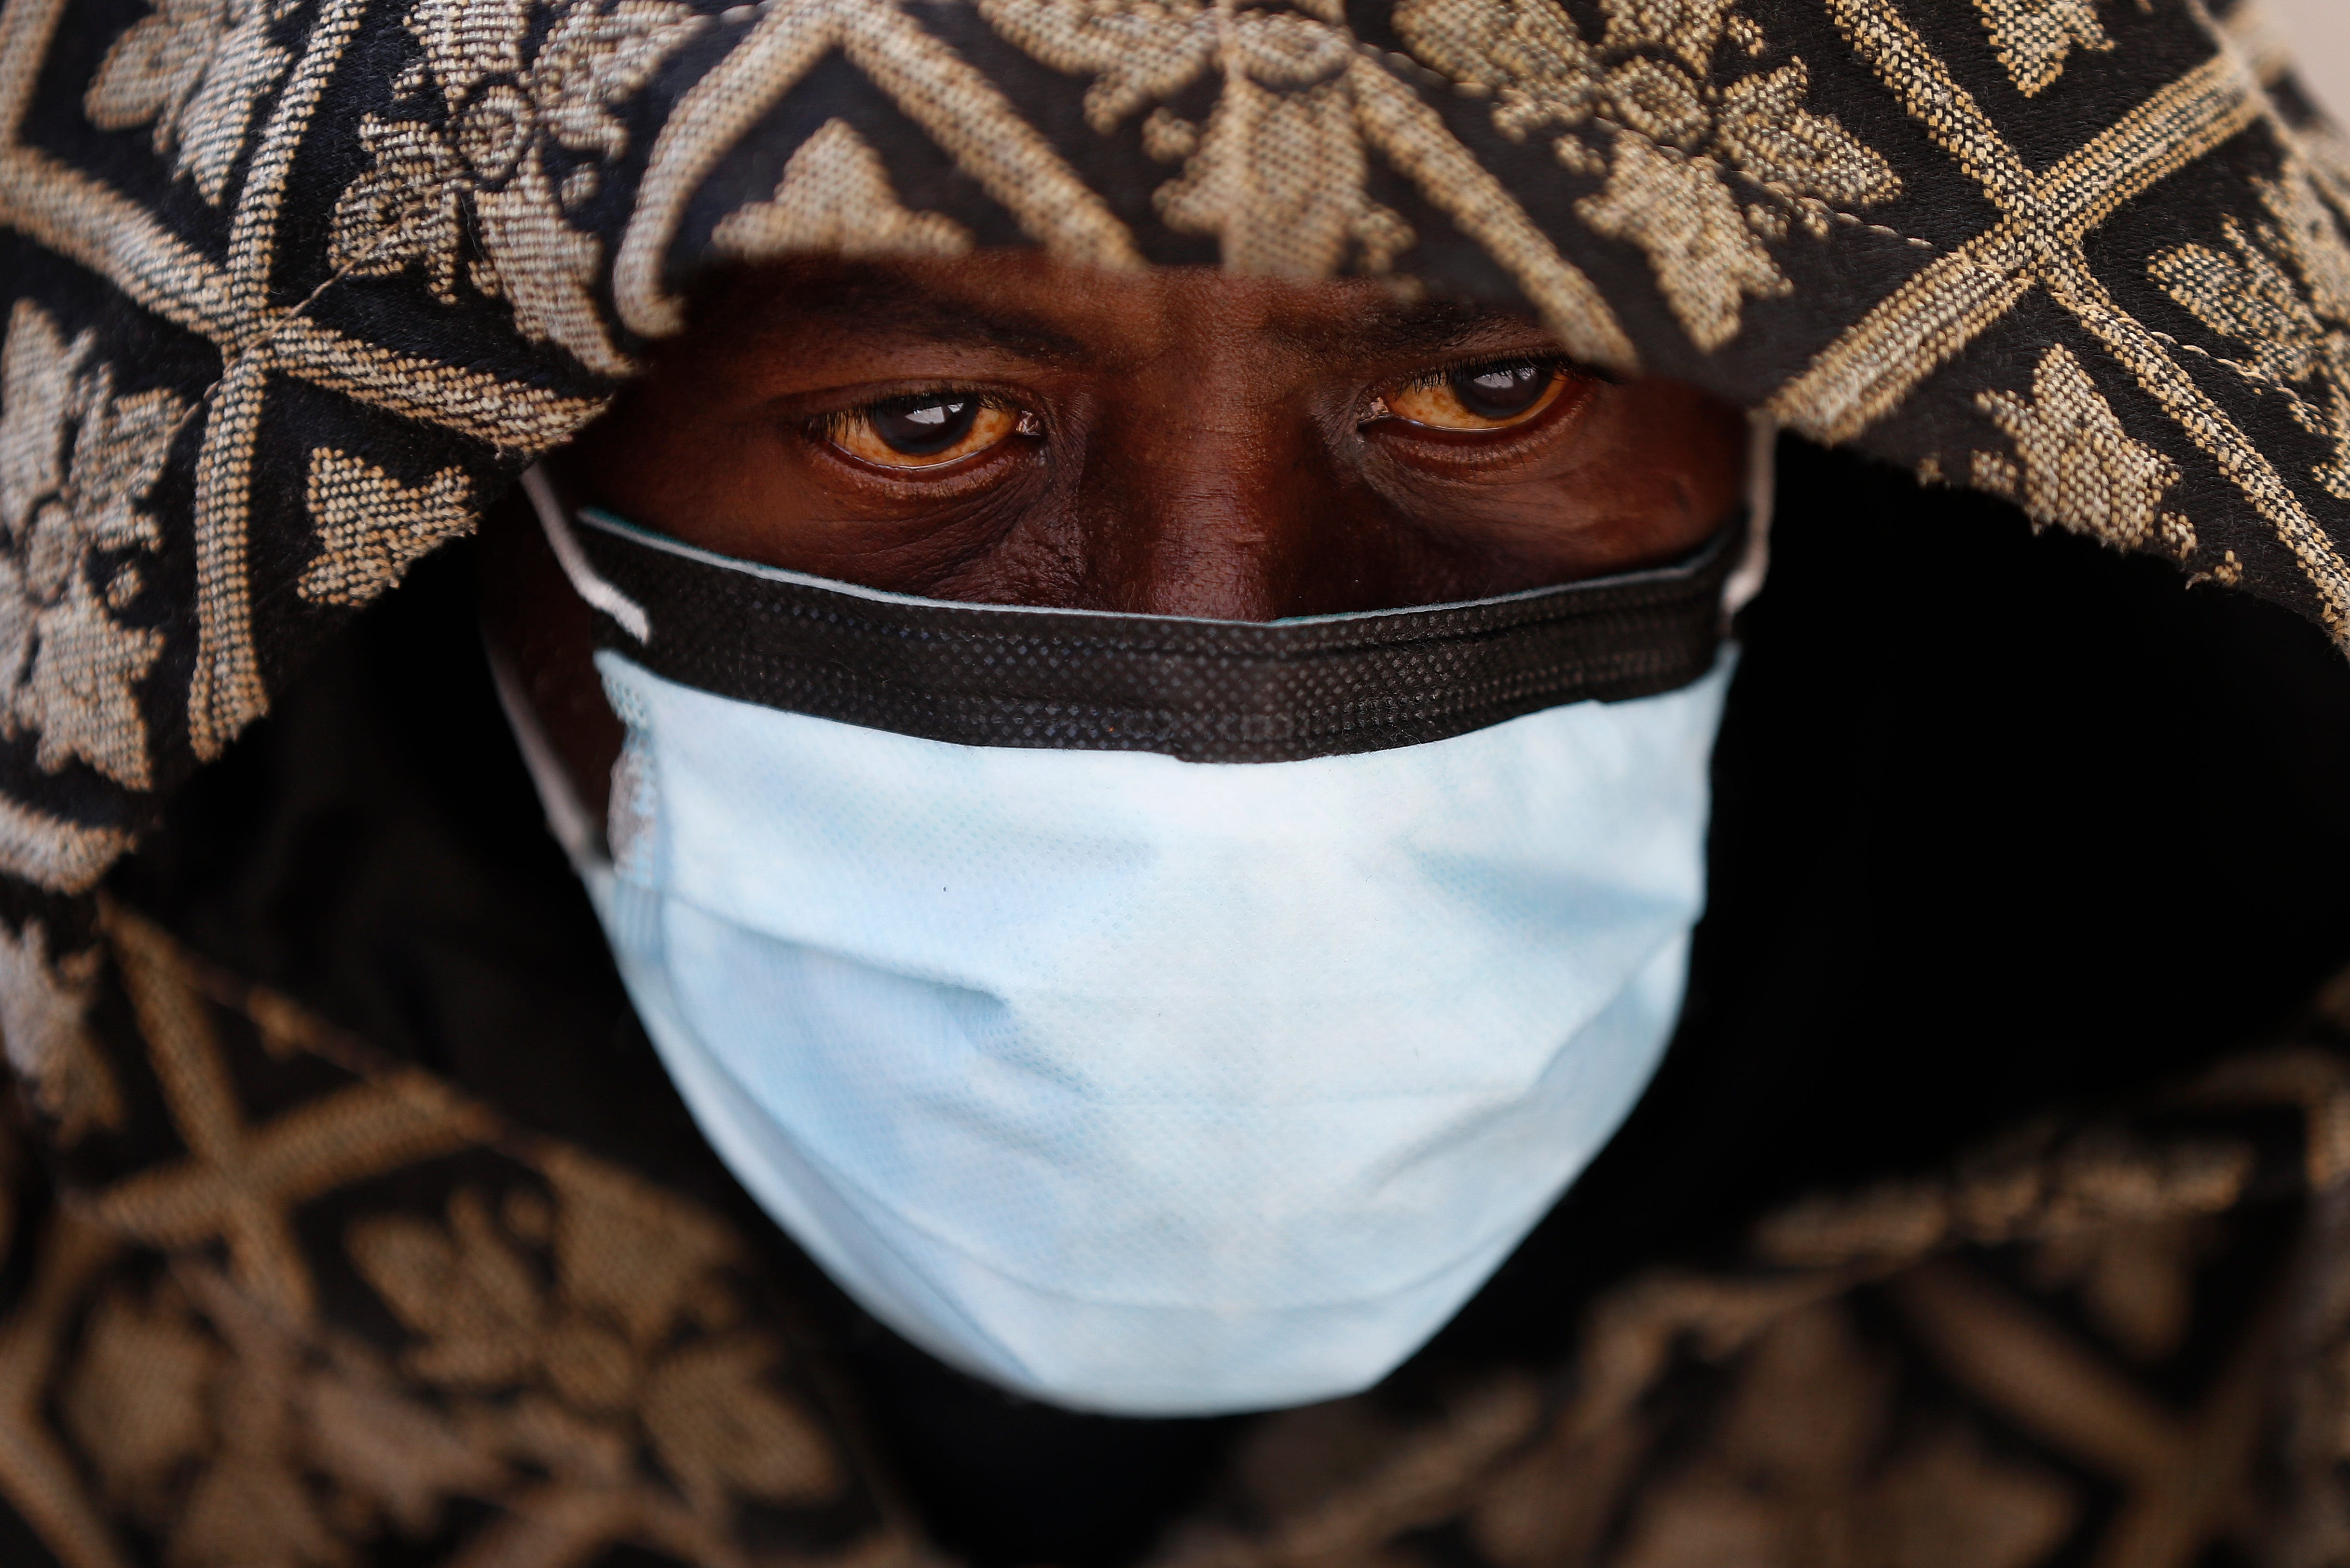 For black Americans, bias seen in coronavirus response is continuation of injustice